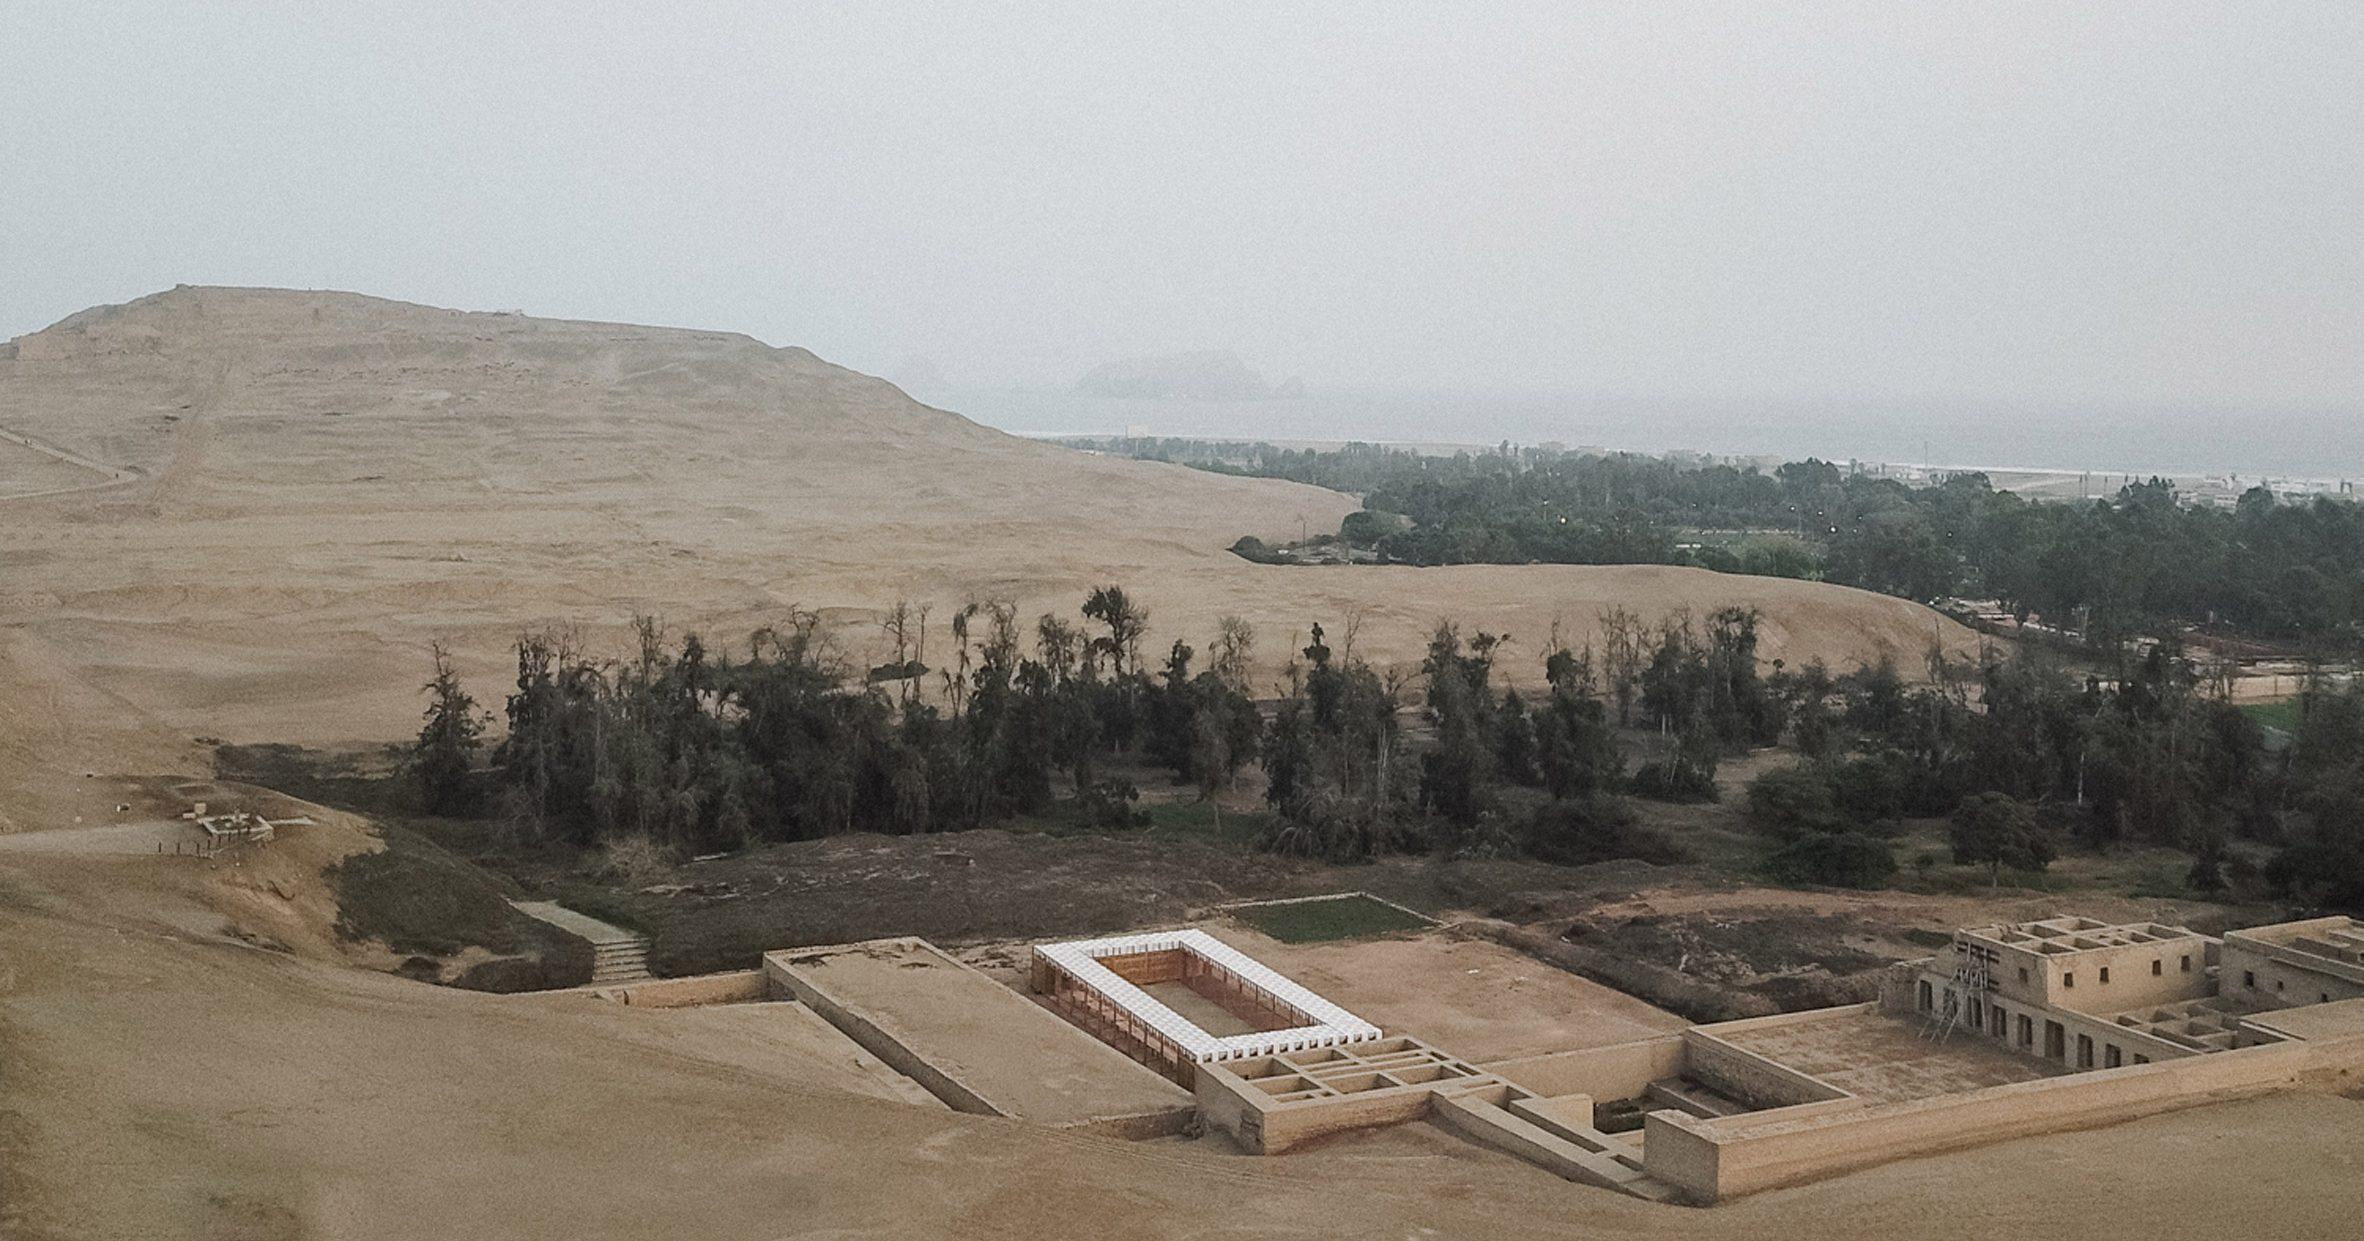 Pachacamac by Studio Tom Emerson and Taller 5